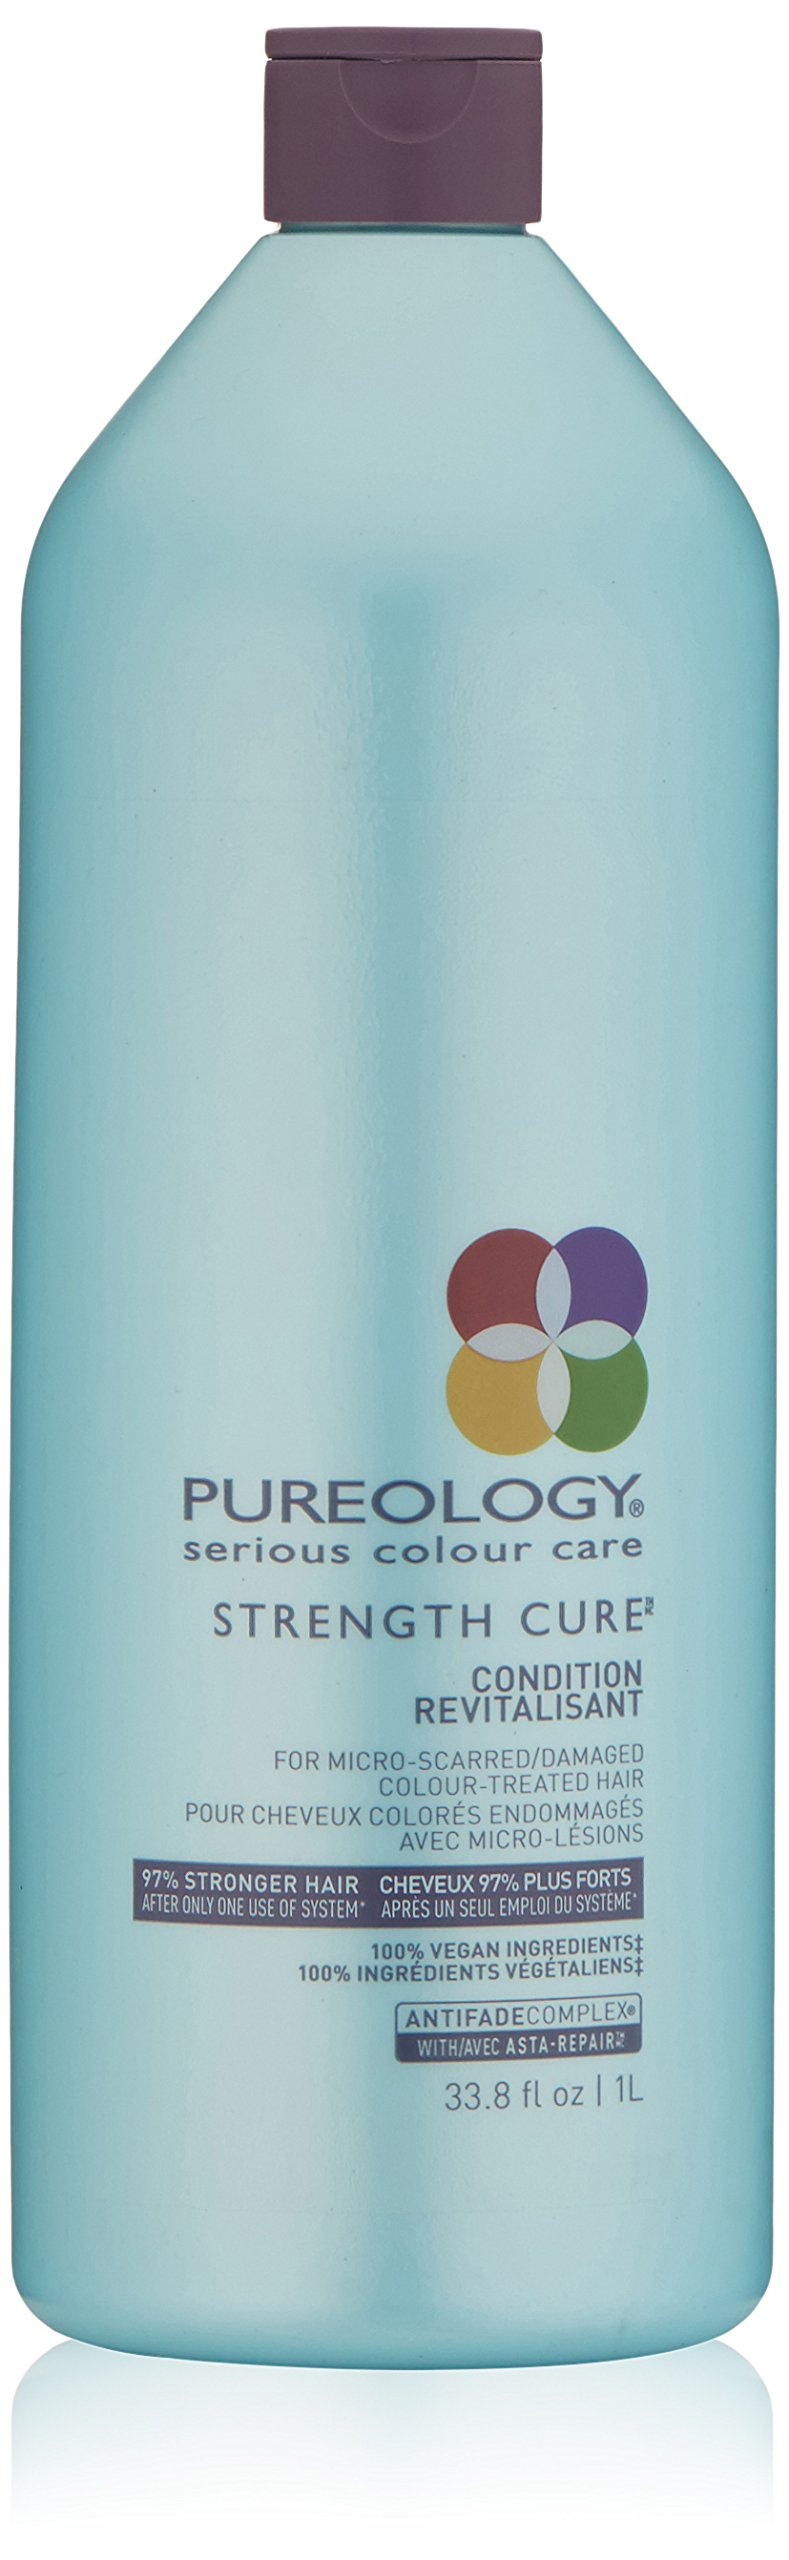 Pureology Strength Cure Conditioner, 33.8 Fl Oz by Pureology